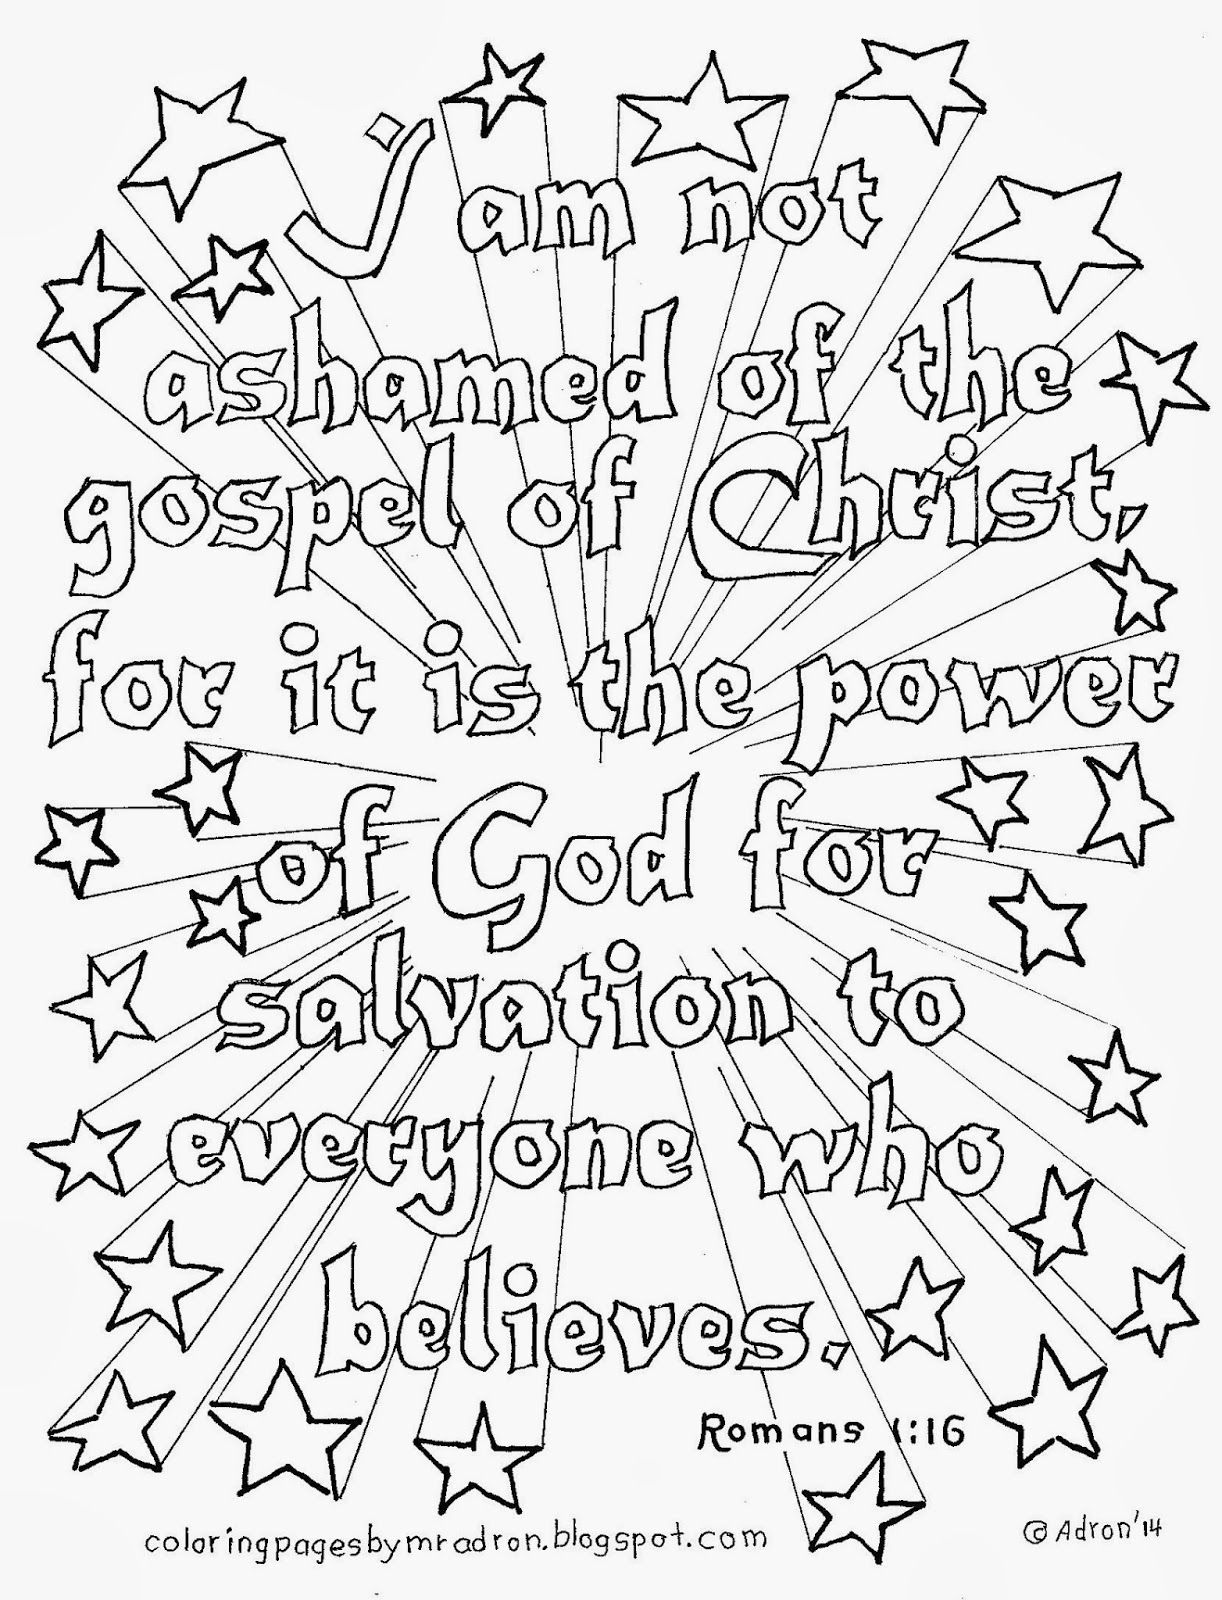 romans 1 16 coloring page see more at my blog http